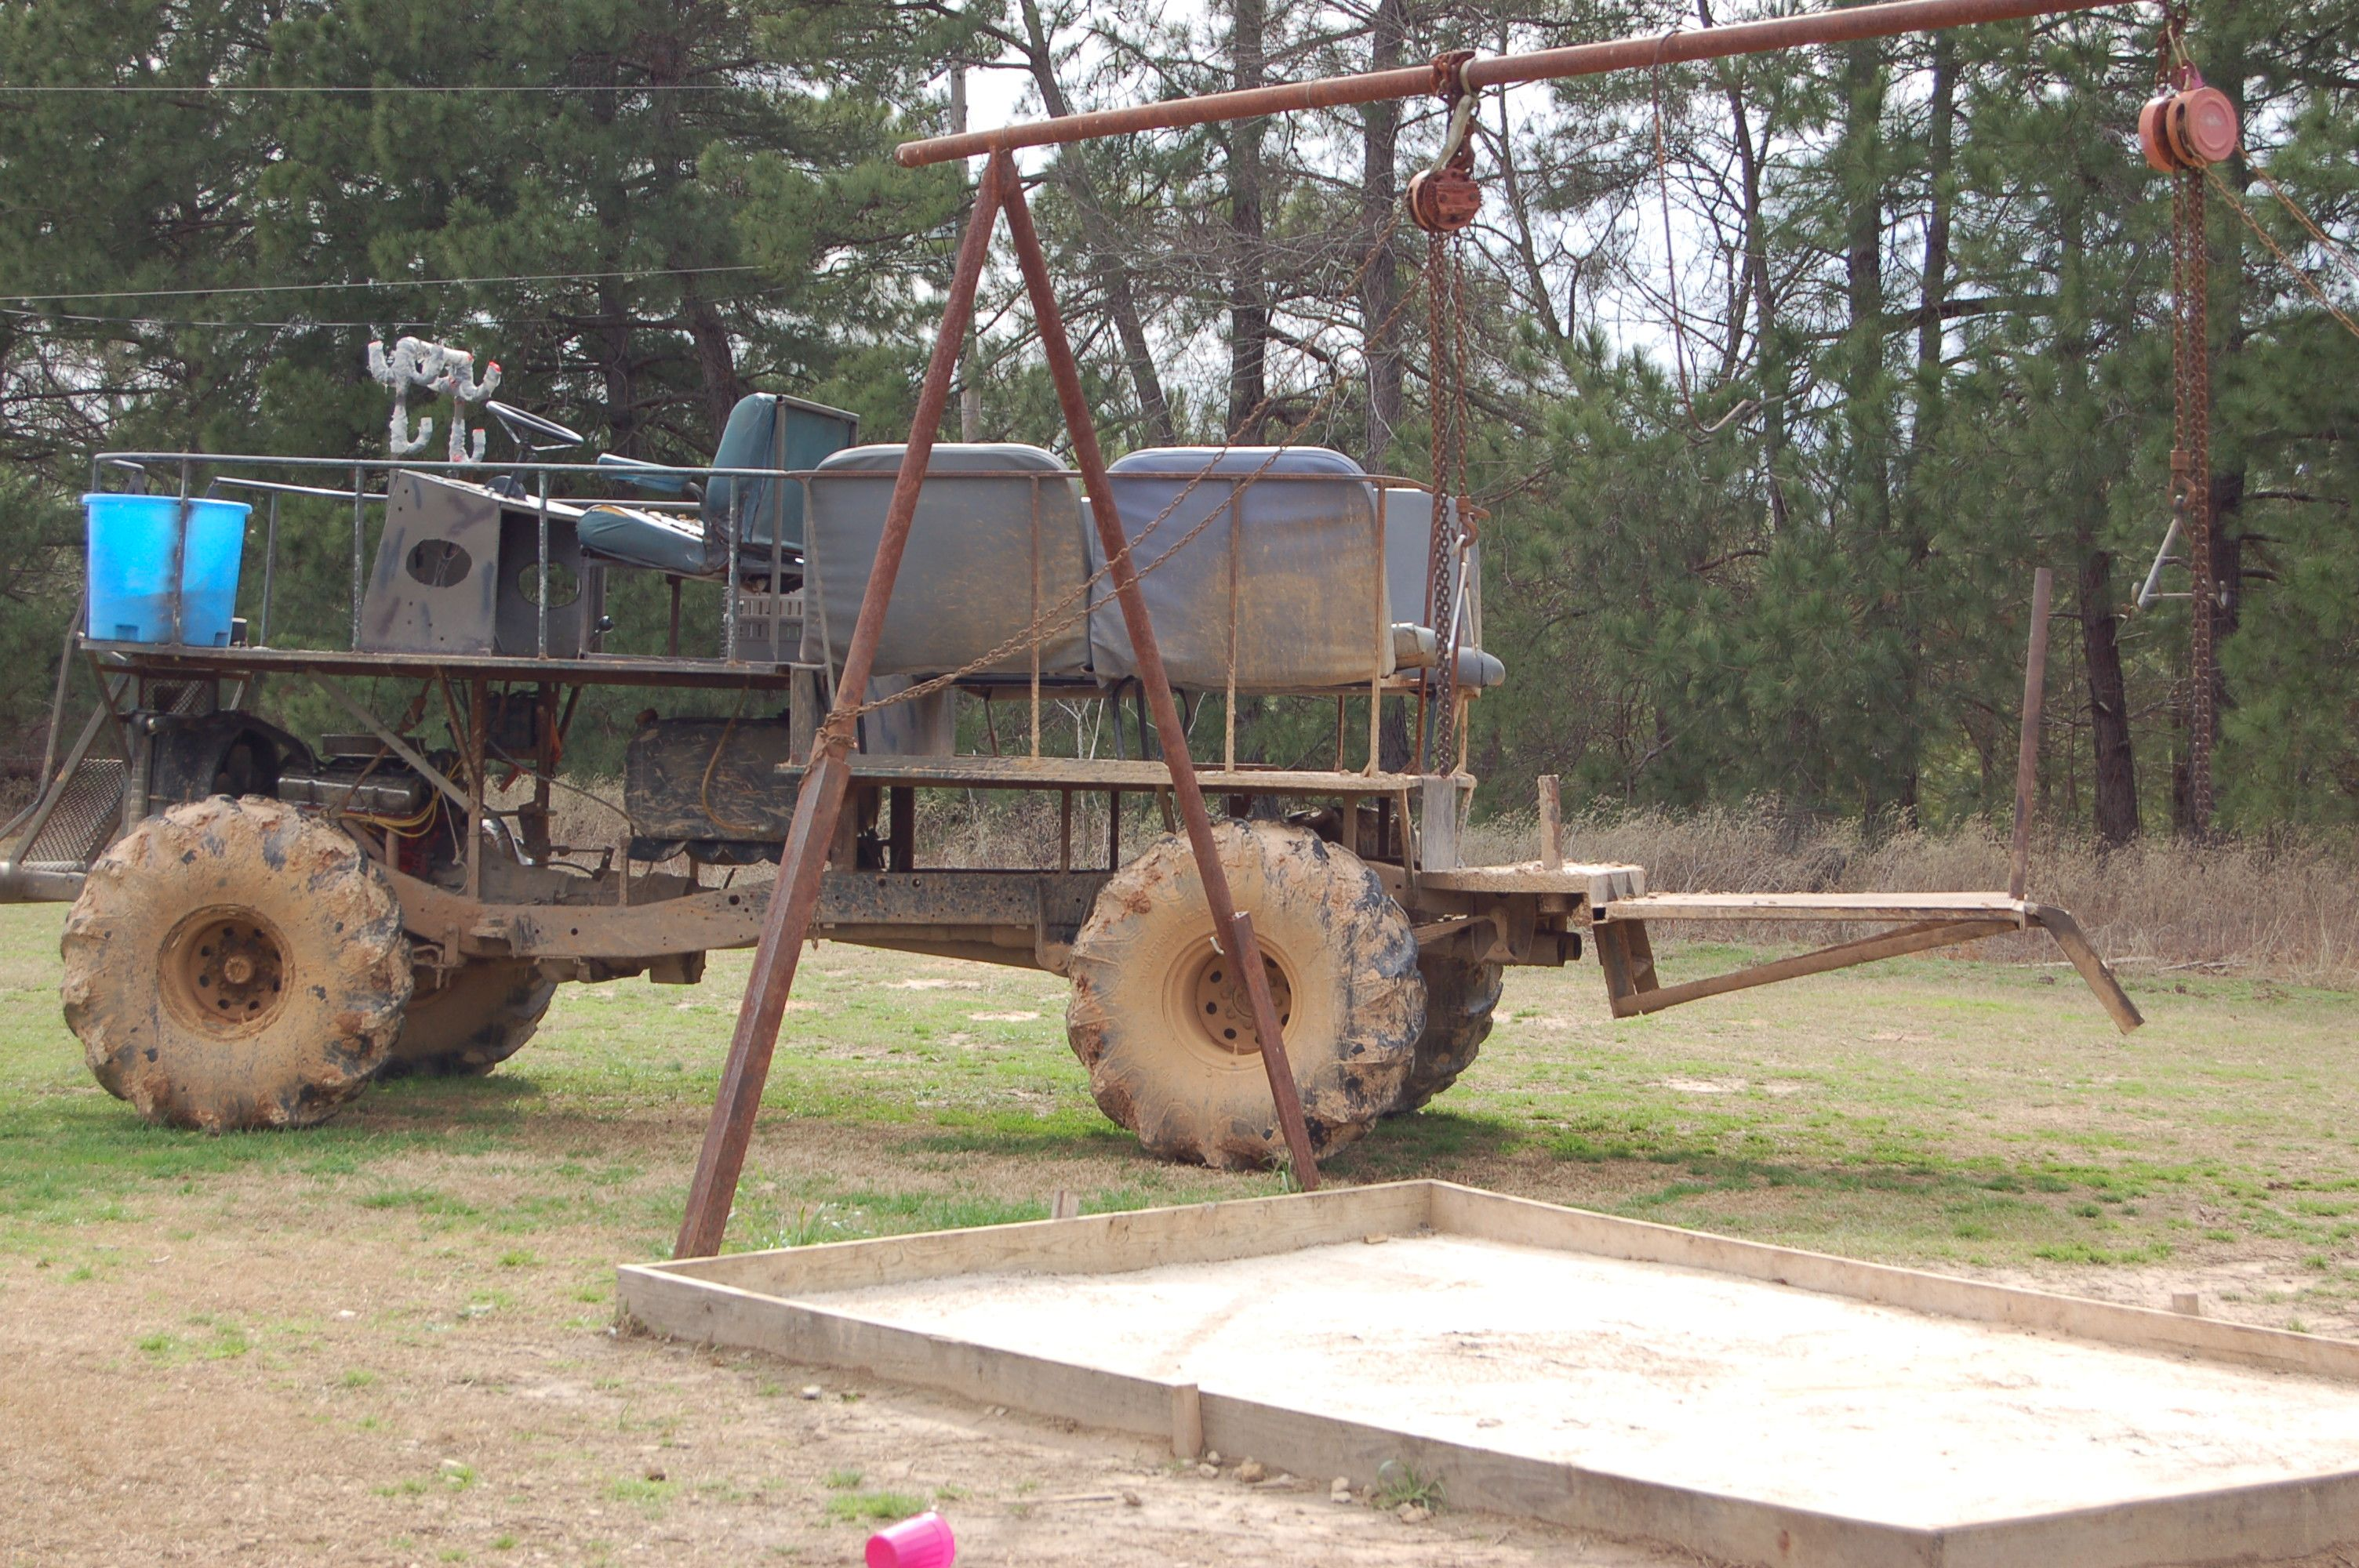 Swamp Buggy next to Skinning area so y'all get an idea of how tall the buggy is